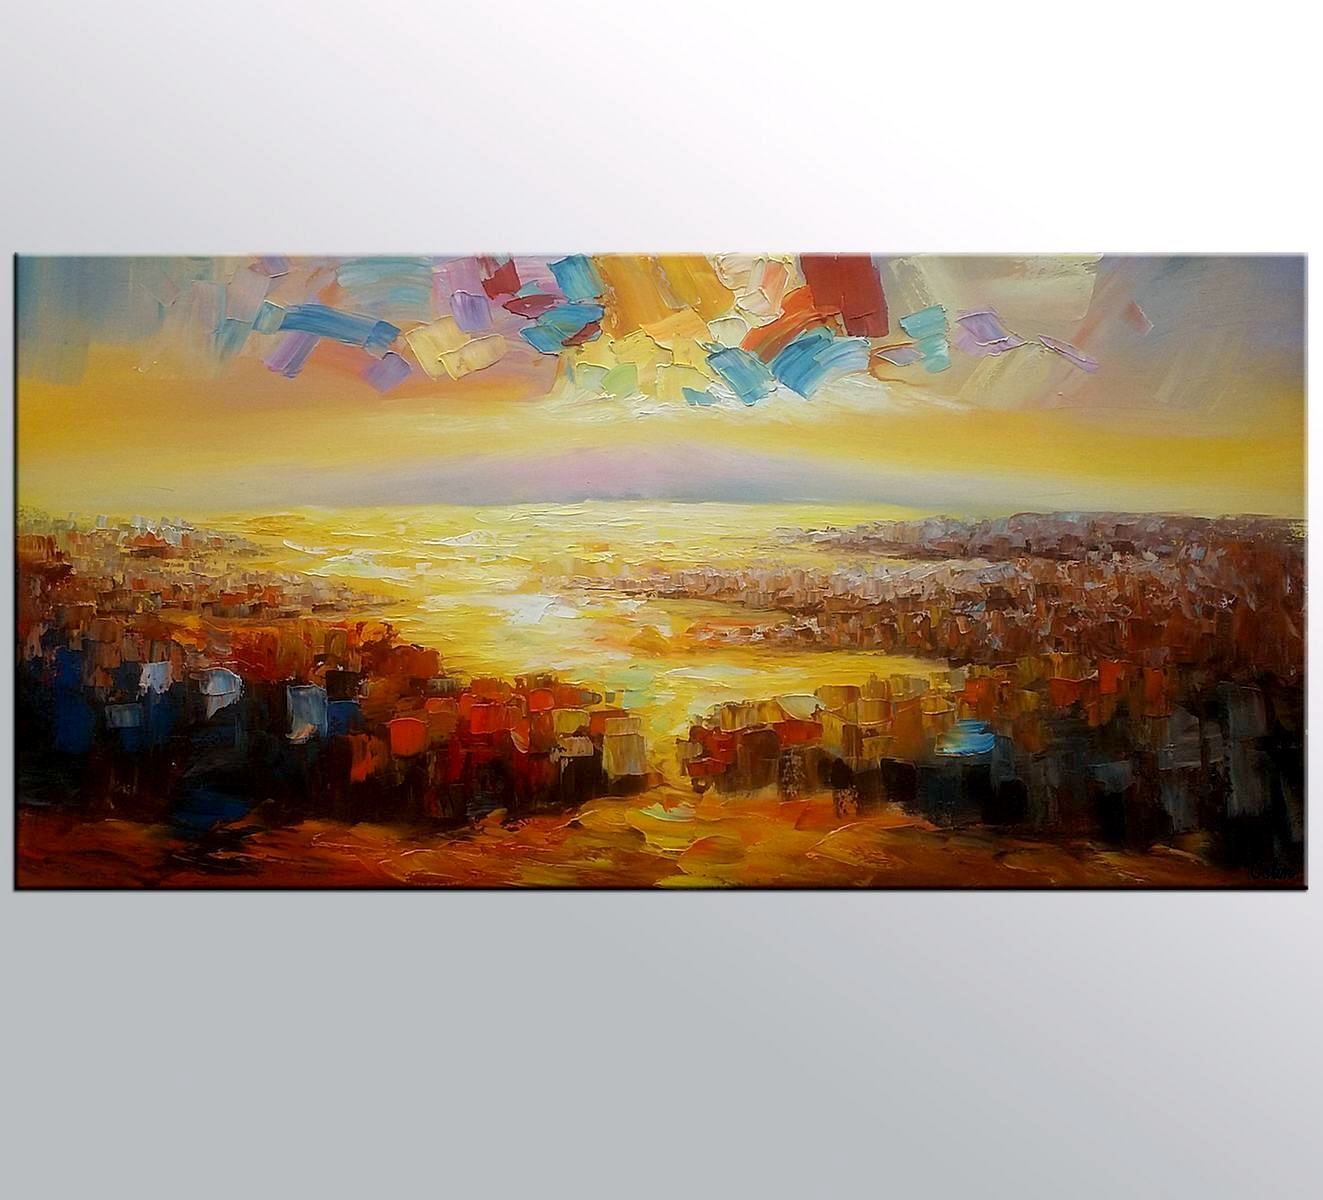 Large Art, Original Wall Art, Abstract Landscape Painting, Oil Painting, Canvas Art, Wall Art, Contemporary Artwork, 371